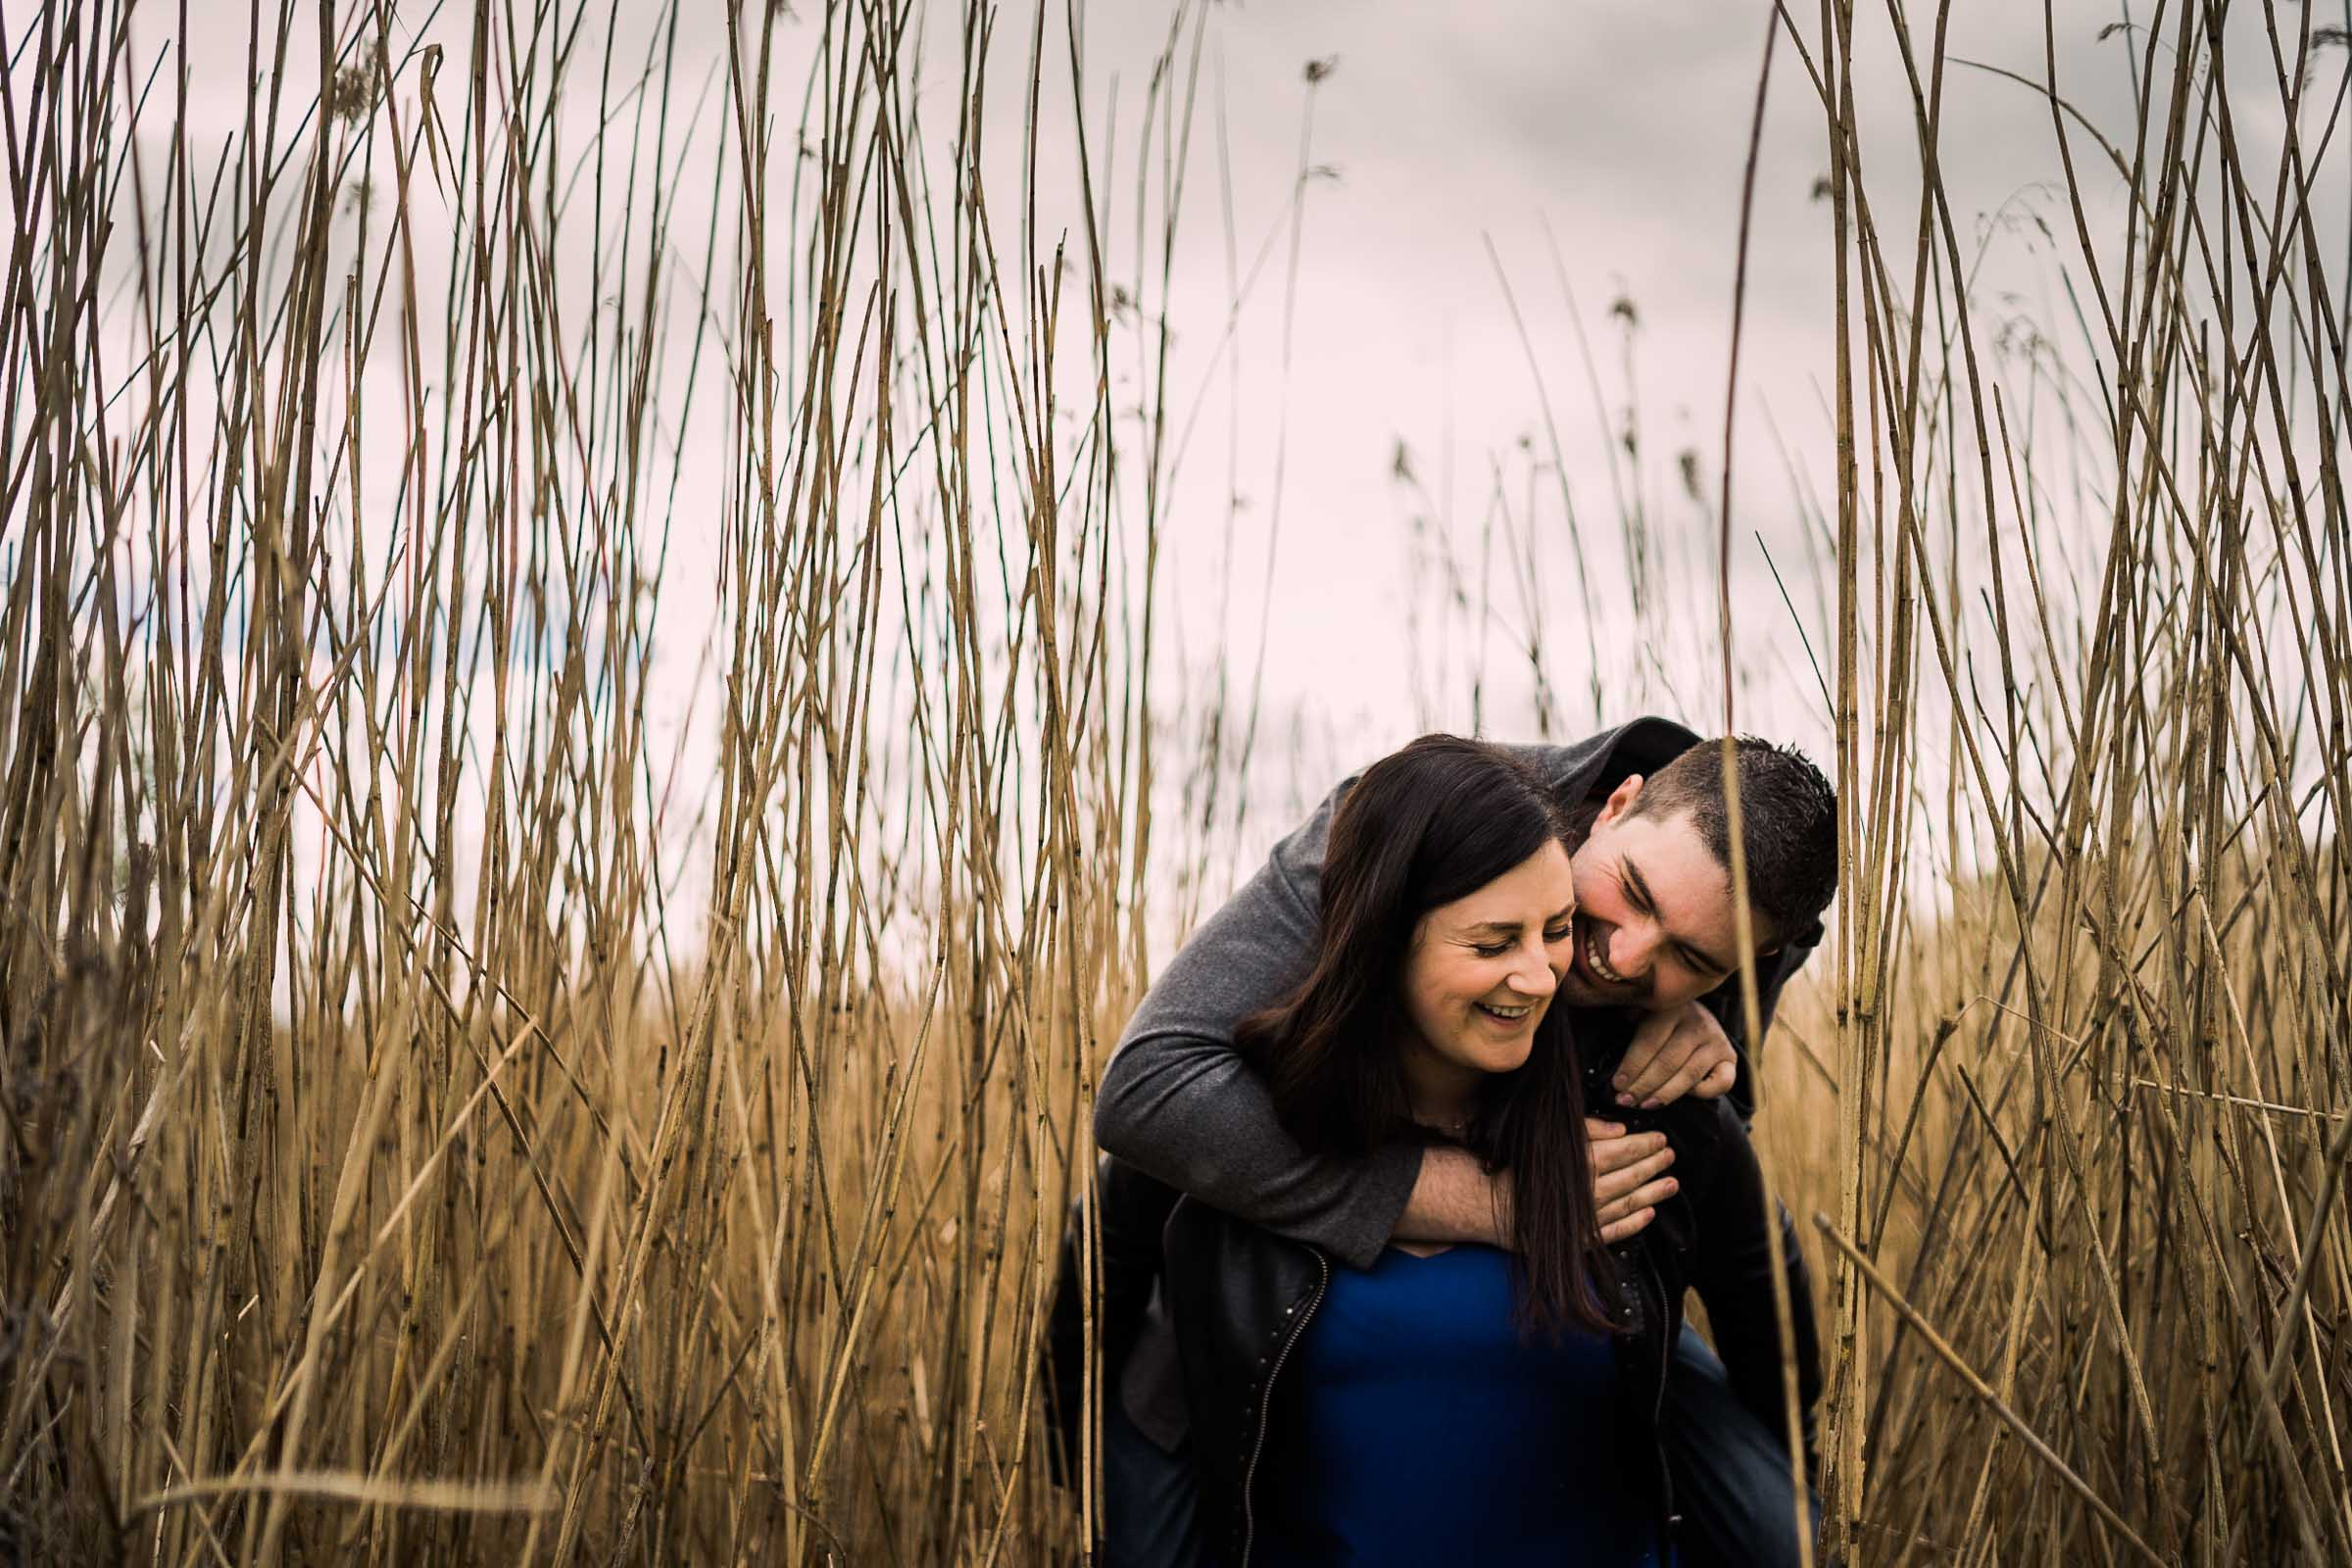 scottish-engagement-photography-elopement-dearlyphotography (43 of 45).jpg